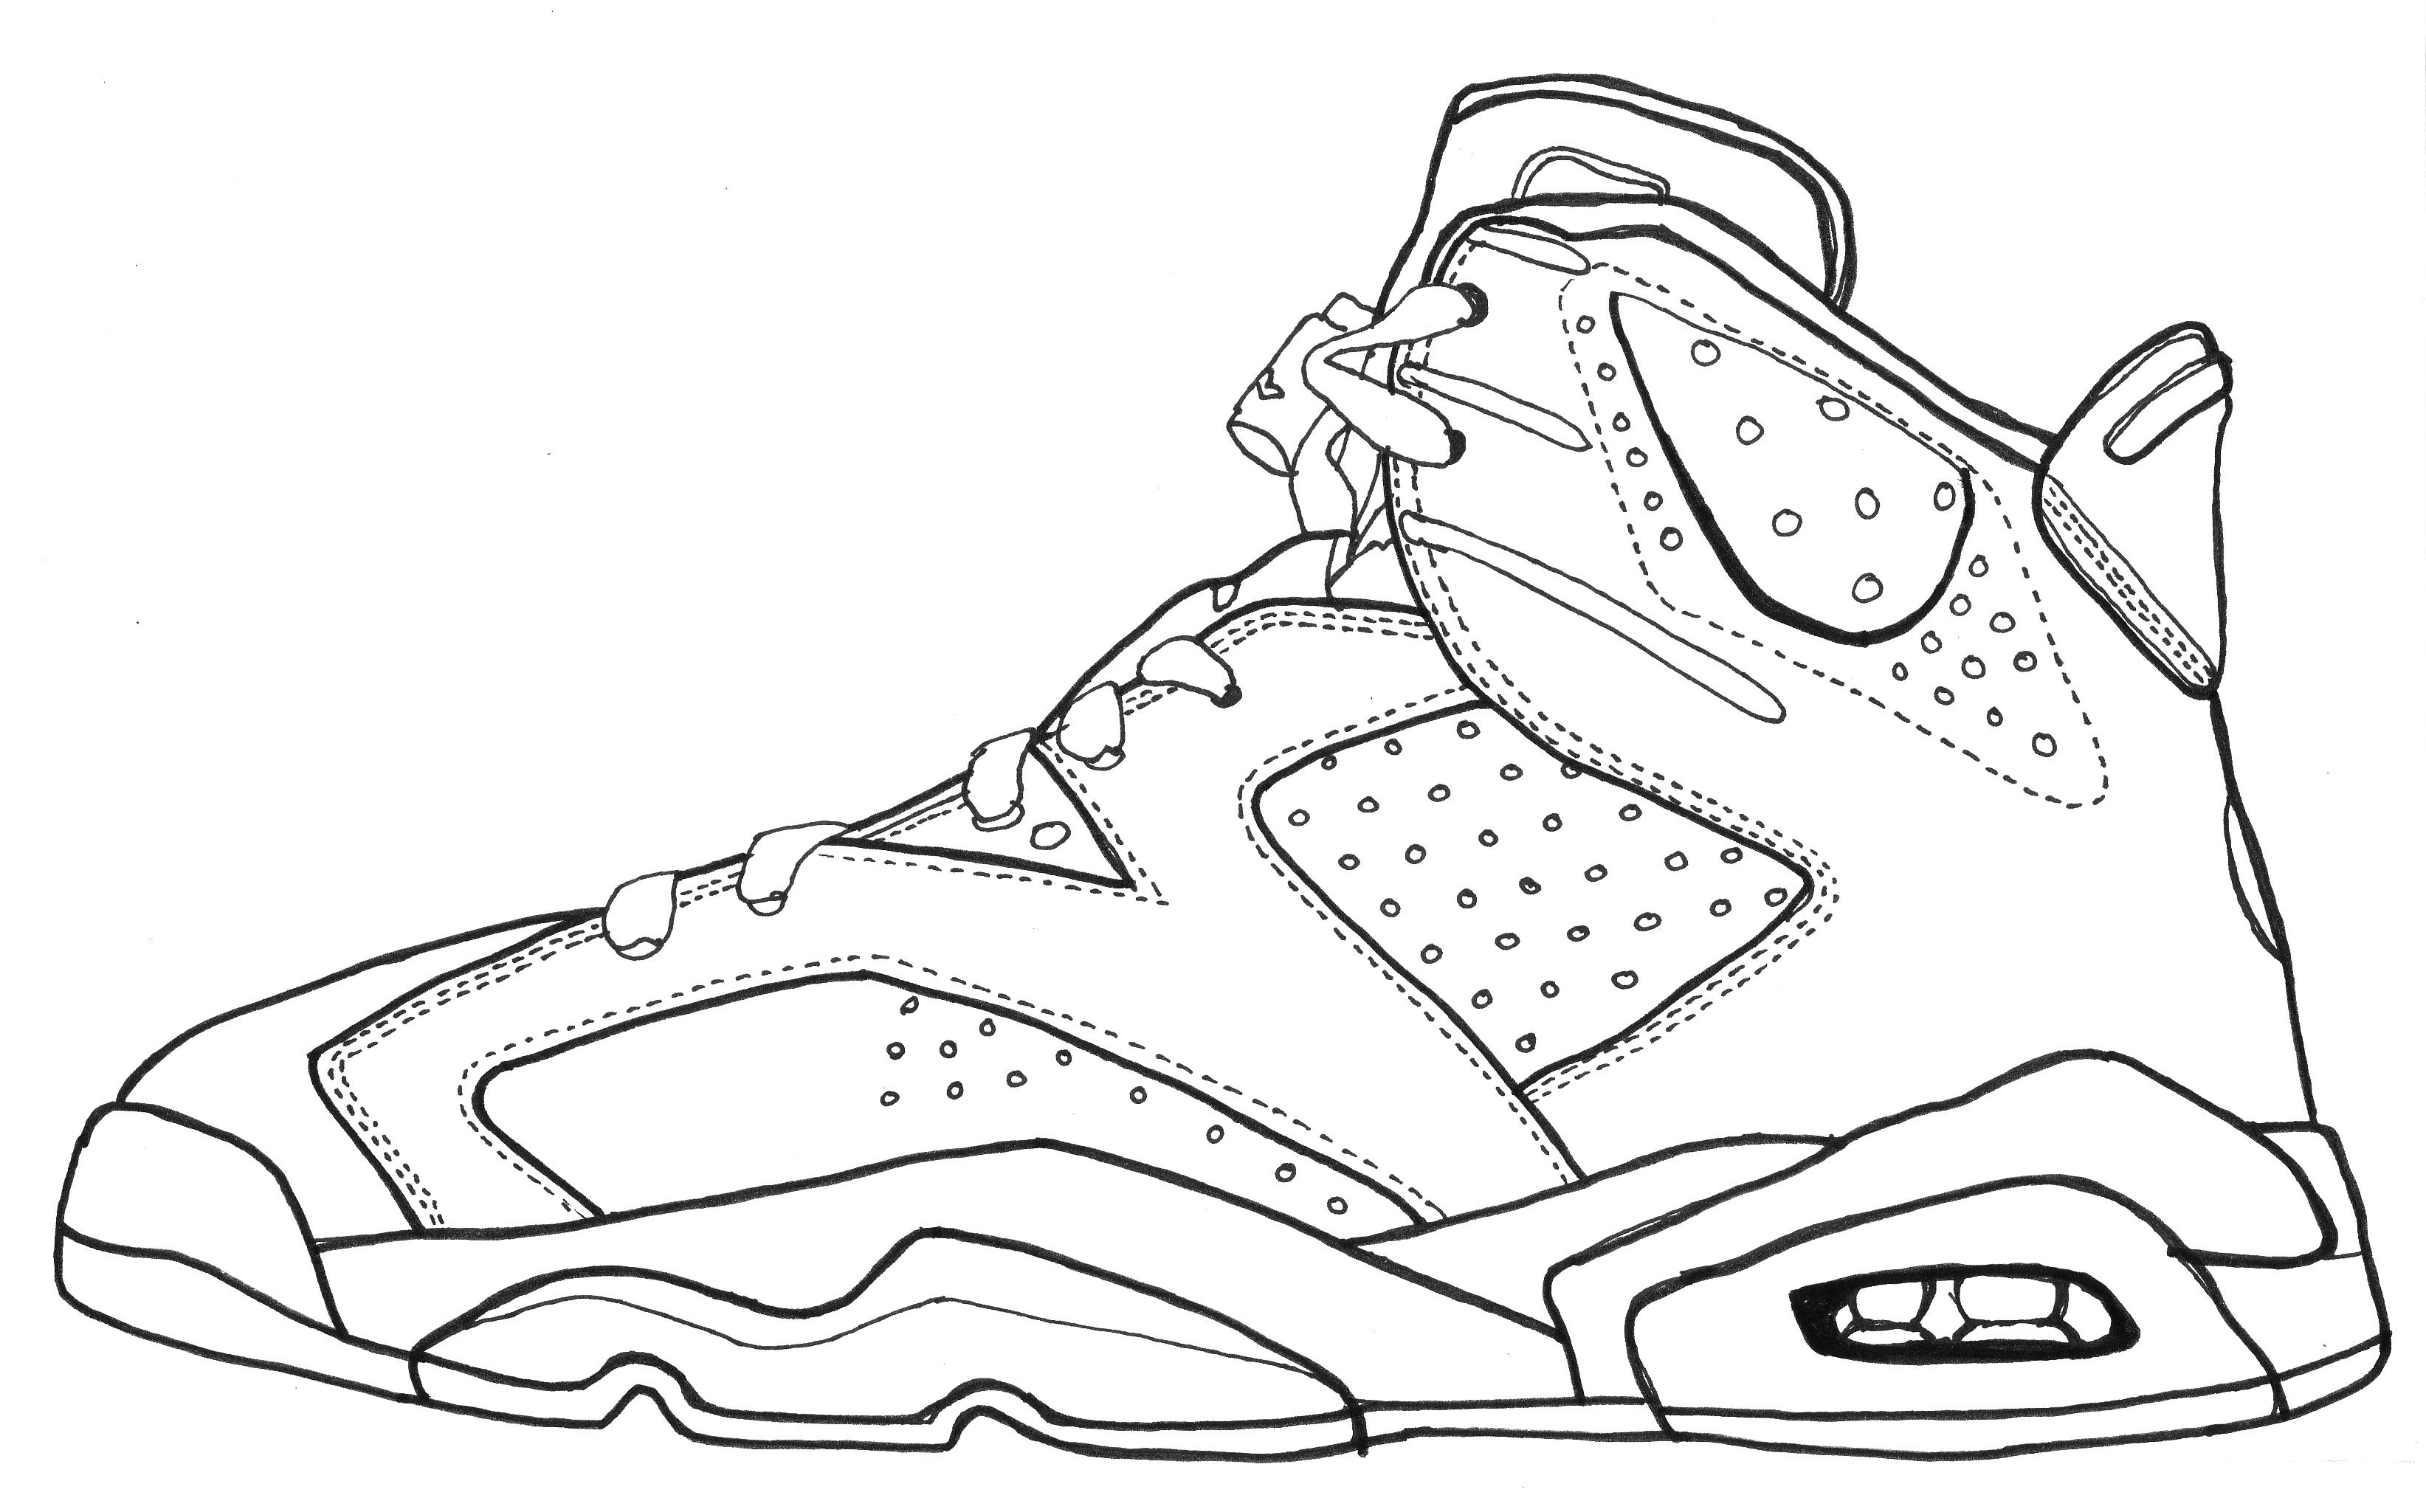 Jordan shoes coloring pages printable - Jordan Vi Sketch Black And White Line Drawing